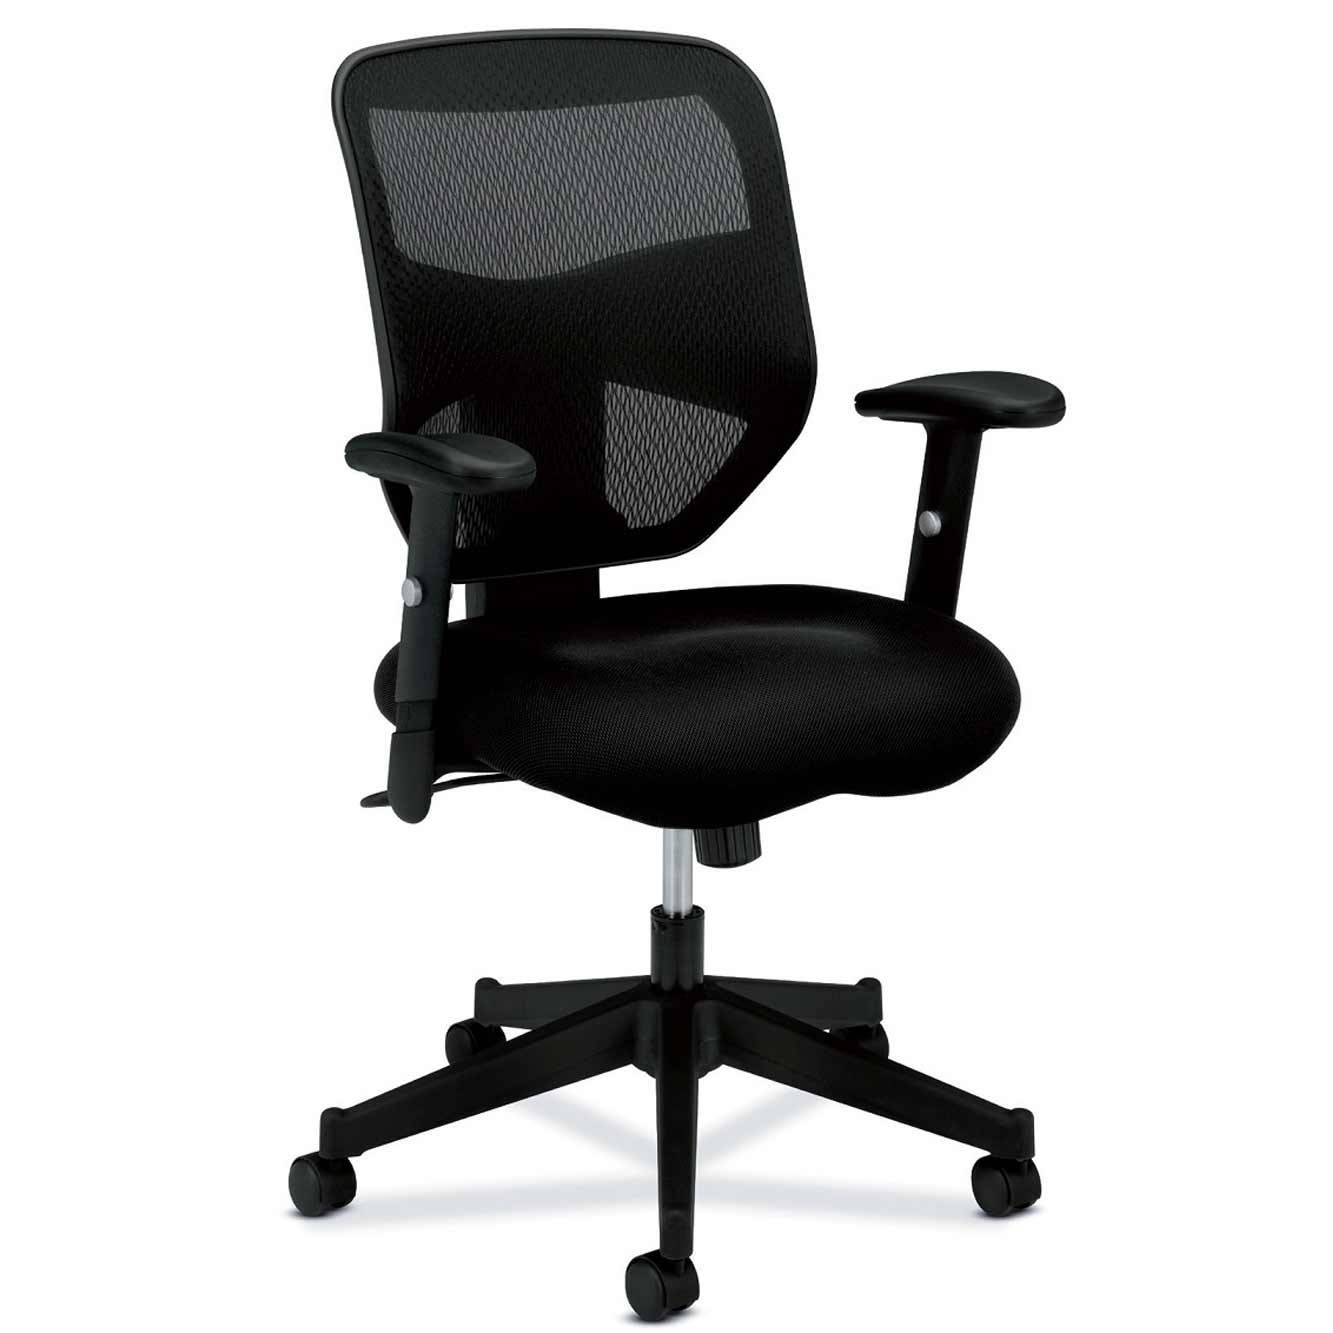 Mesh back basyx HON desk chairs